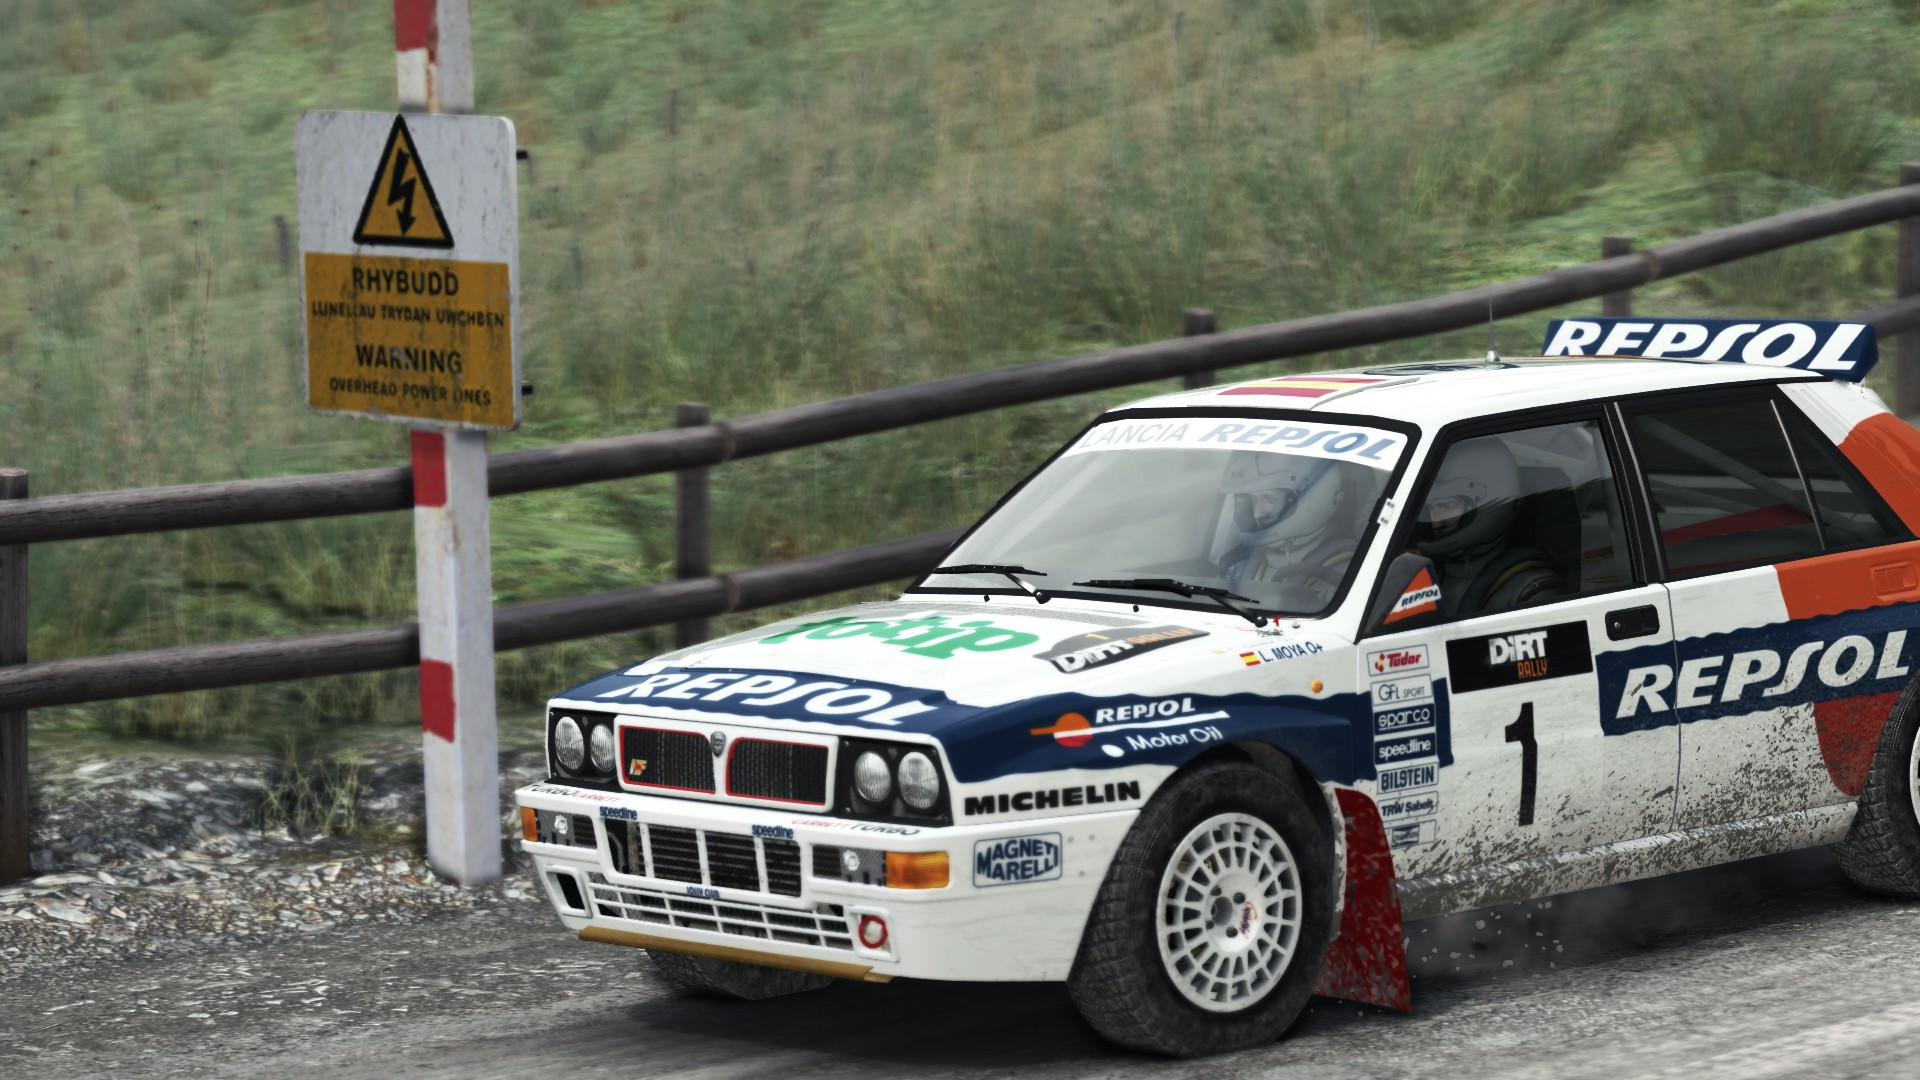 Mods lancia delta hf integrale 1993 sainz racedepartment 105058 view attachment 105059 view attachment 105060 view attachment 105062 car lancia delta hf integrale evoluzione year 1993 accurate game model vanachro Gallery